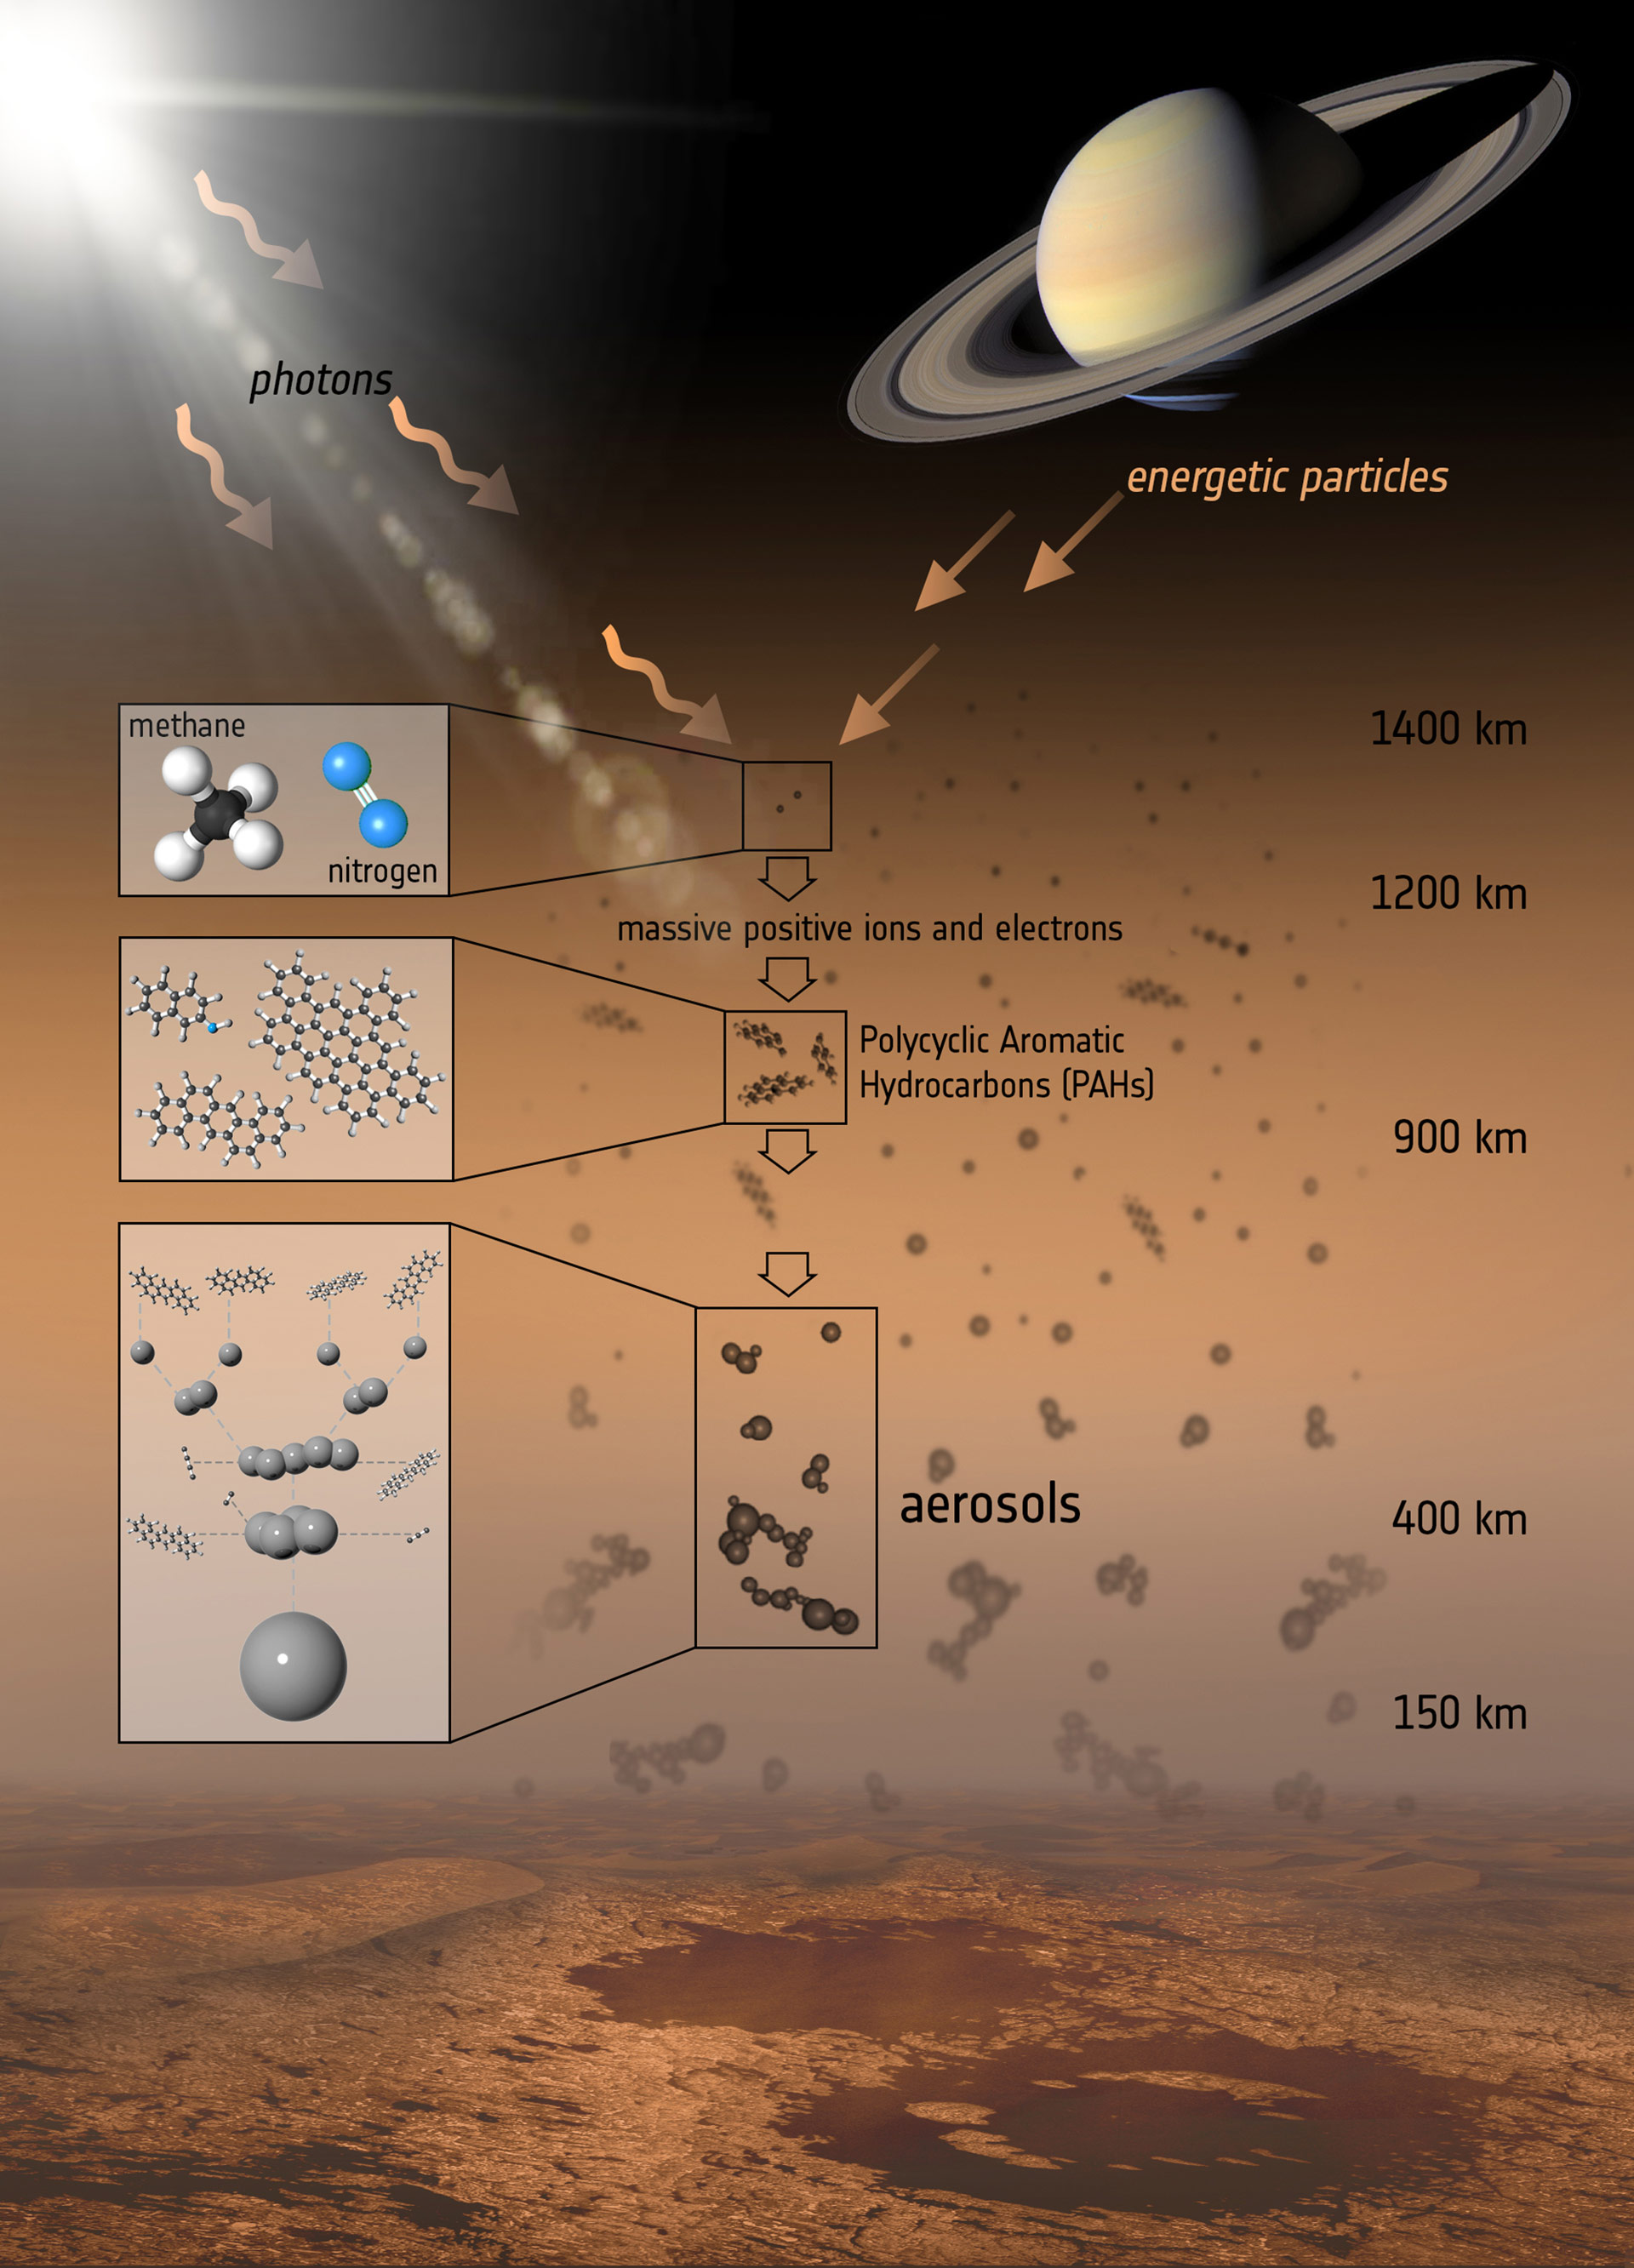 Cassini Data Confirms Pahs Play Major Role In Production Of Lower Mission To Saturn Diagram The Spacecraft Haze On Titan This Illustration